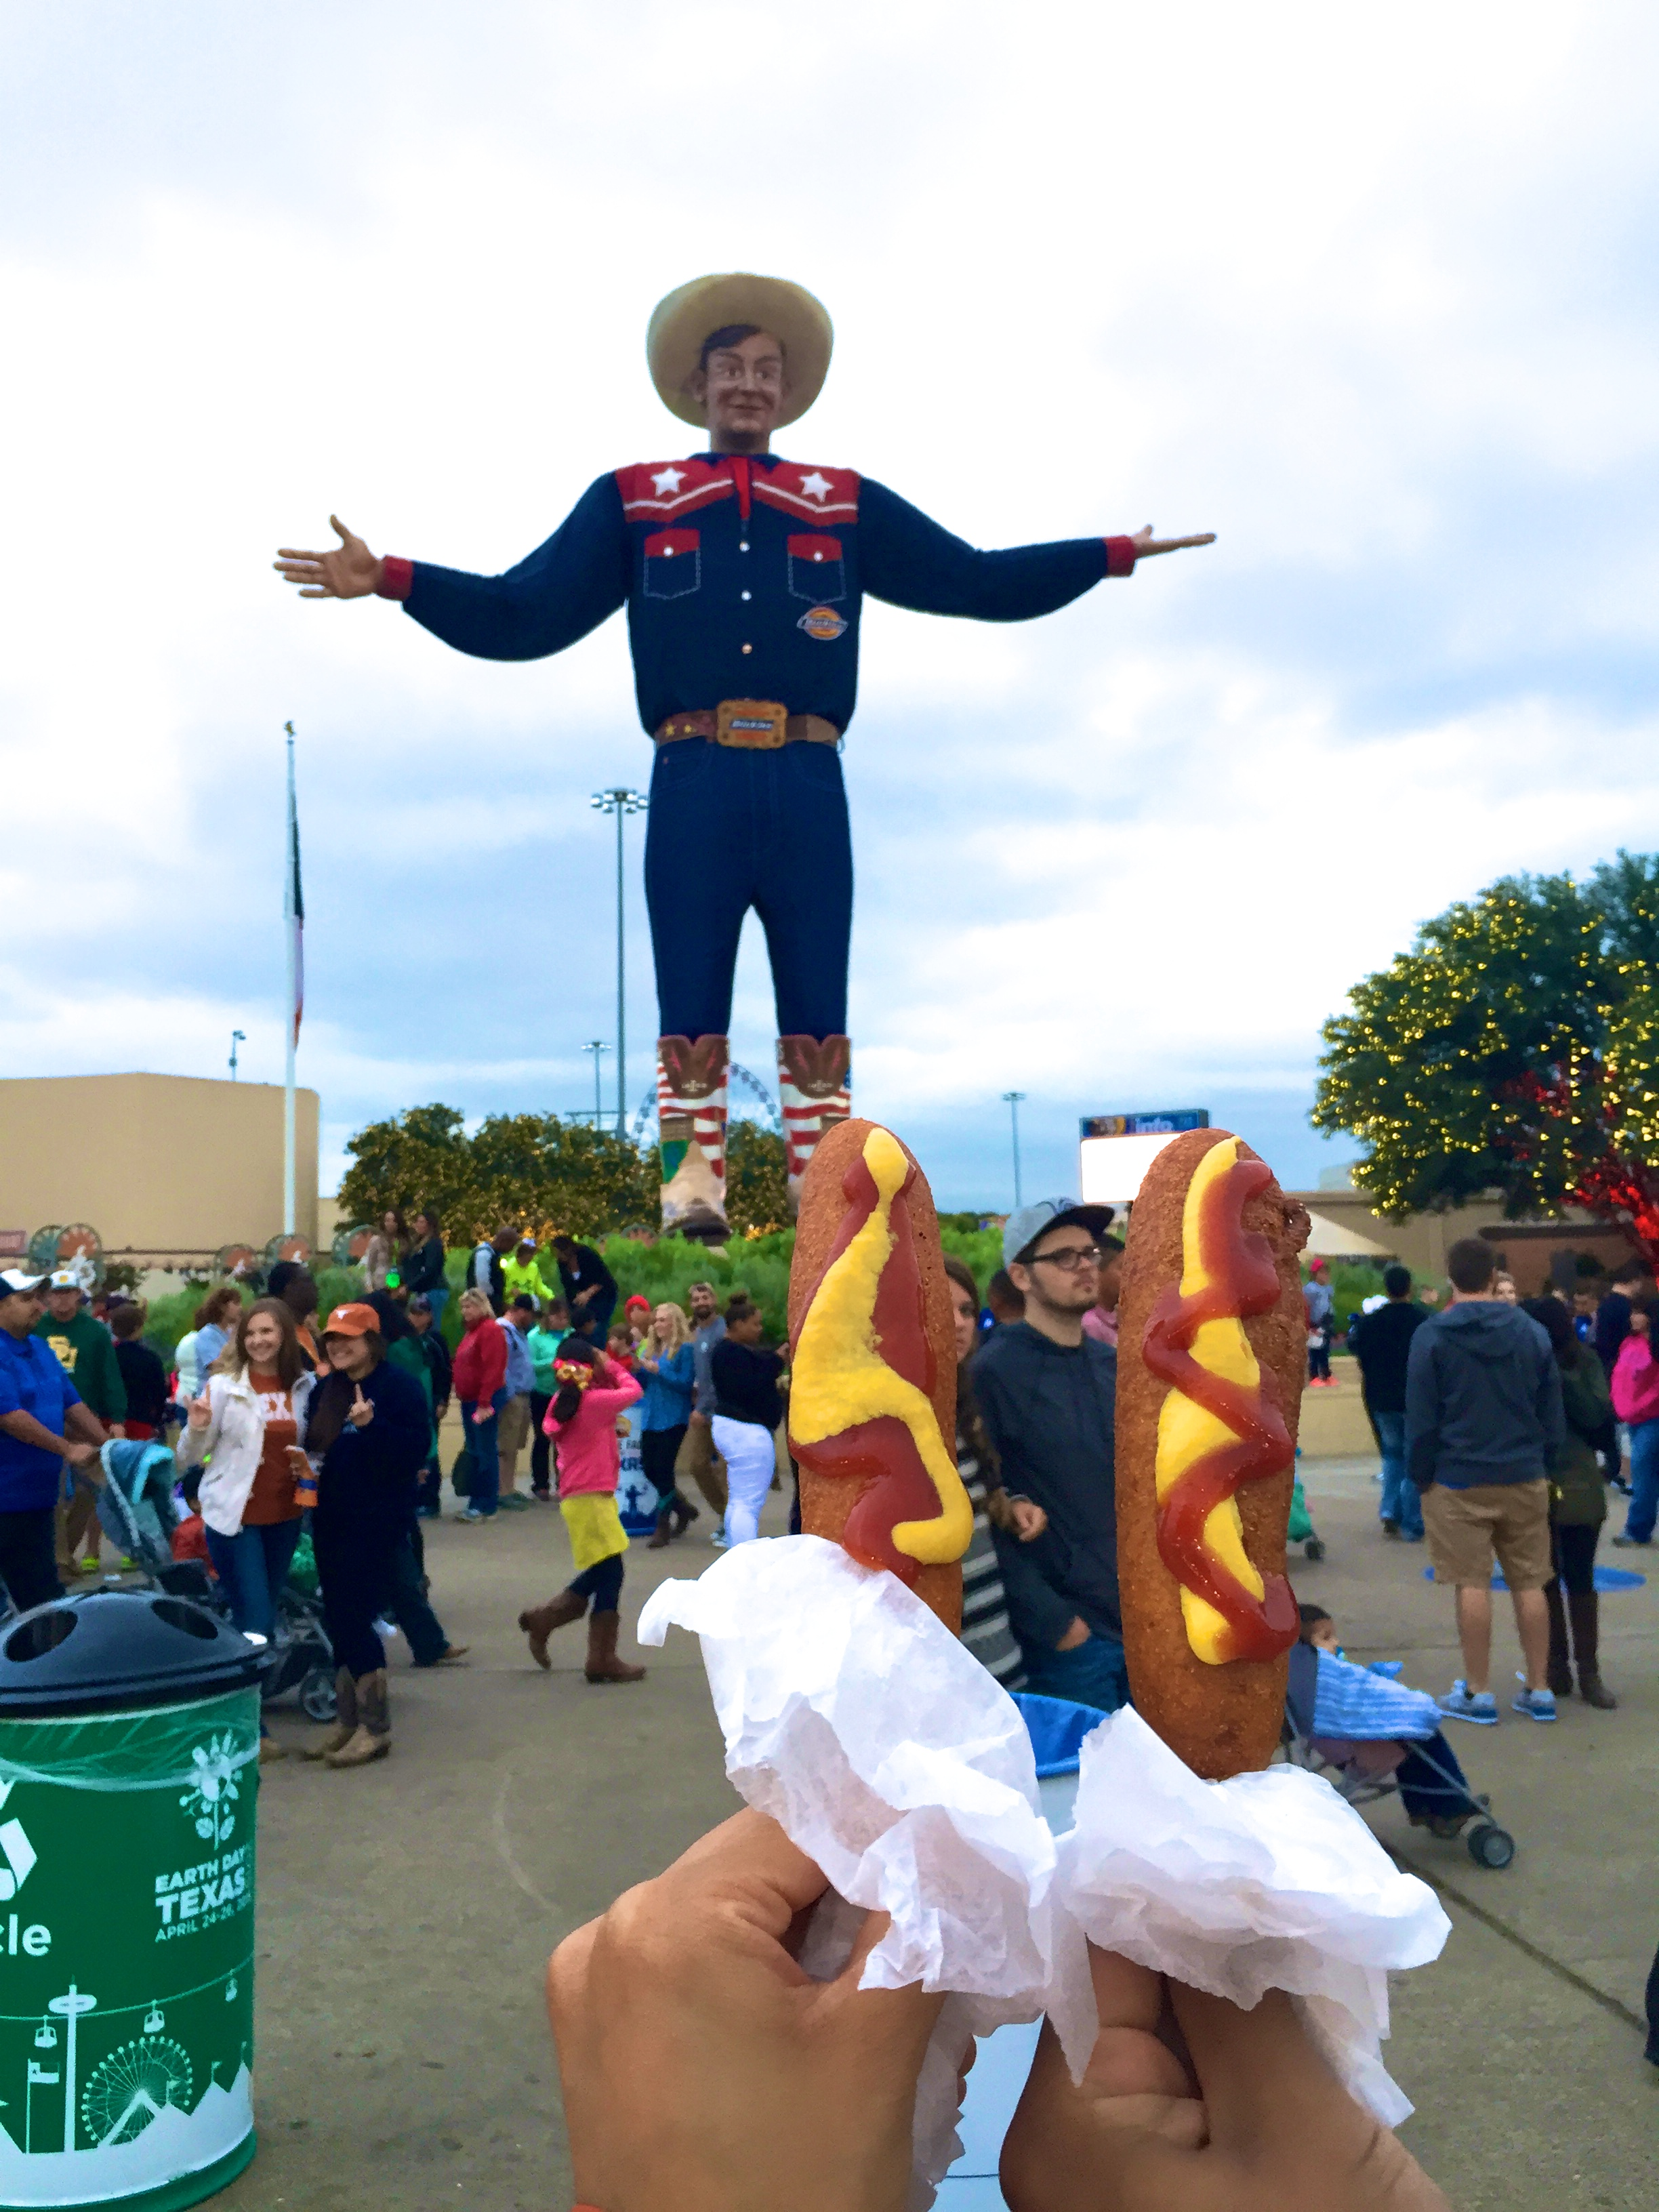 To Big Tex - the fair's beloved mascot.